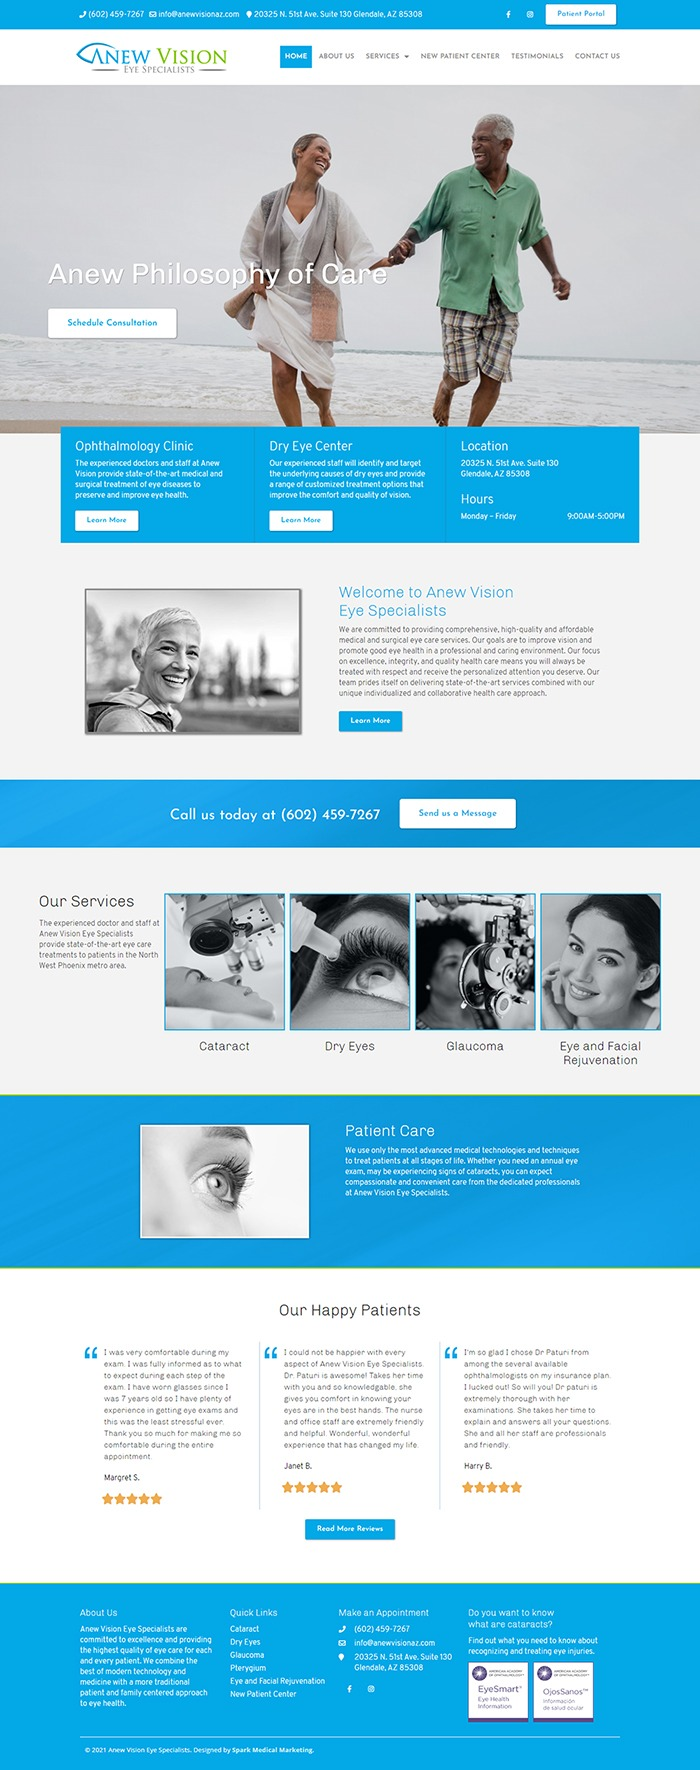 Anew Vision Eye Specialists Homepage Screenshot